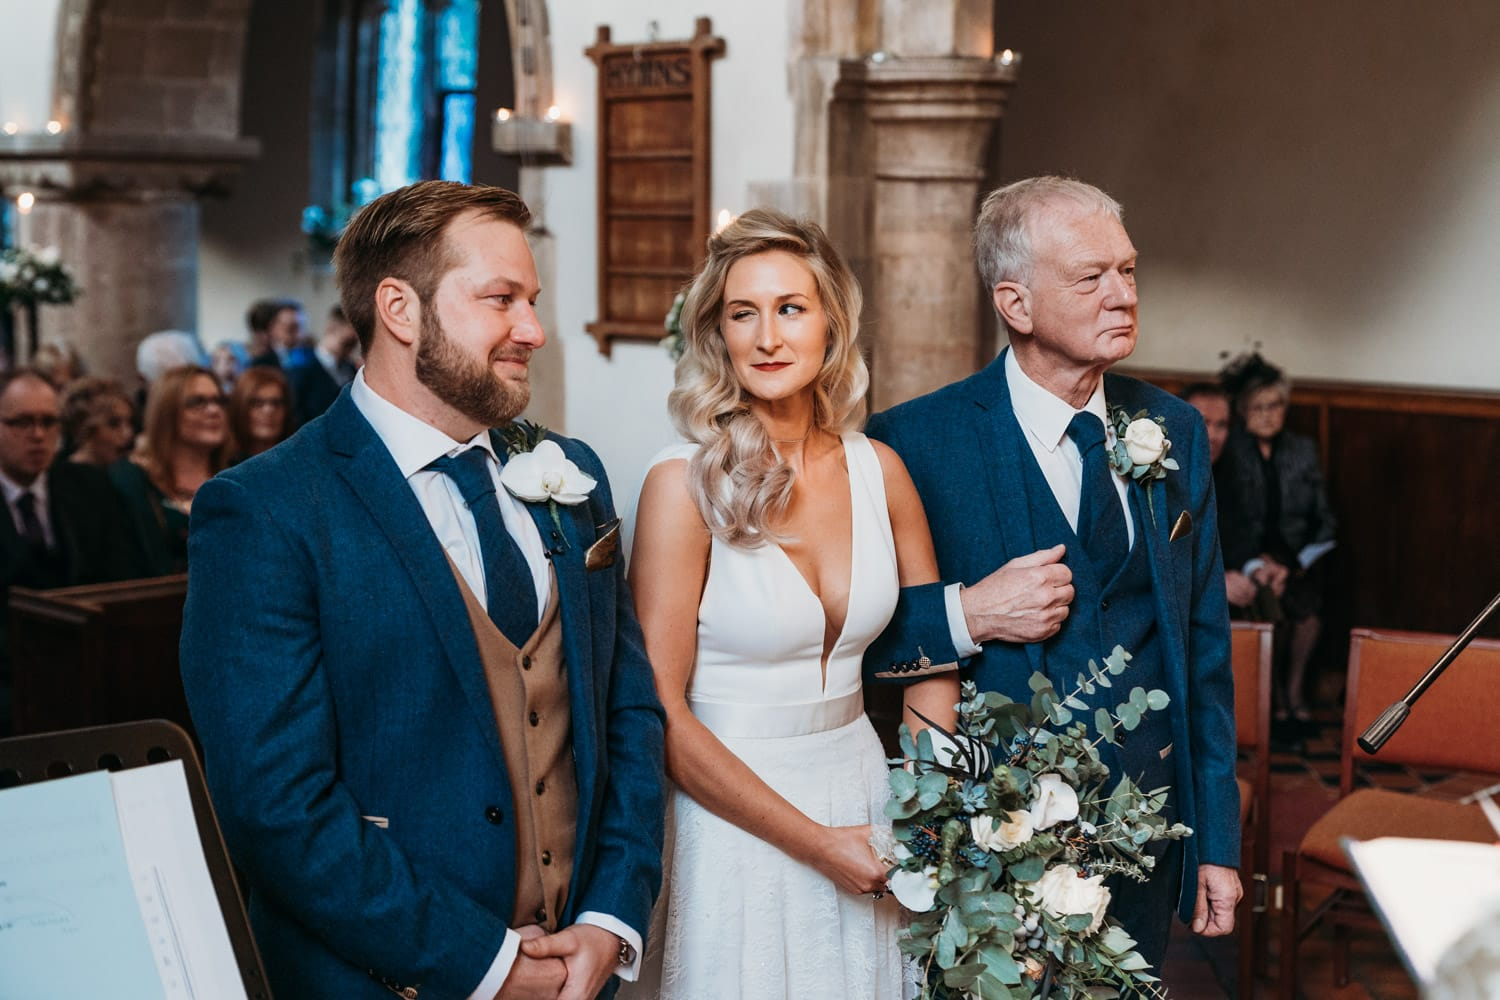 Bride gives her groom a reassuring wink as she reaches the top of the aisle at a church wedding